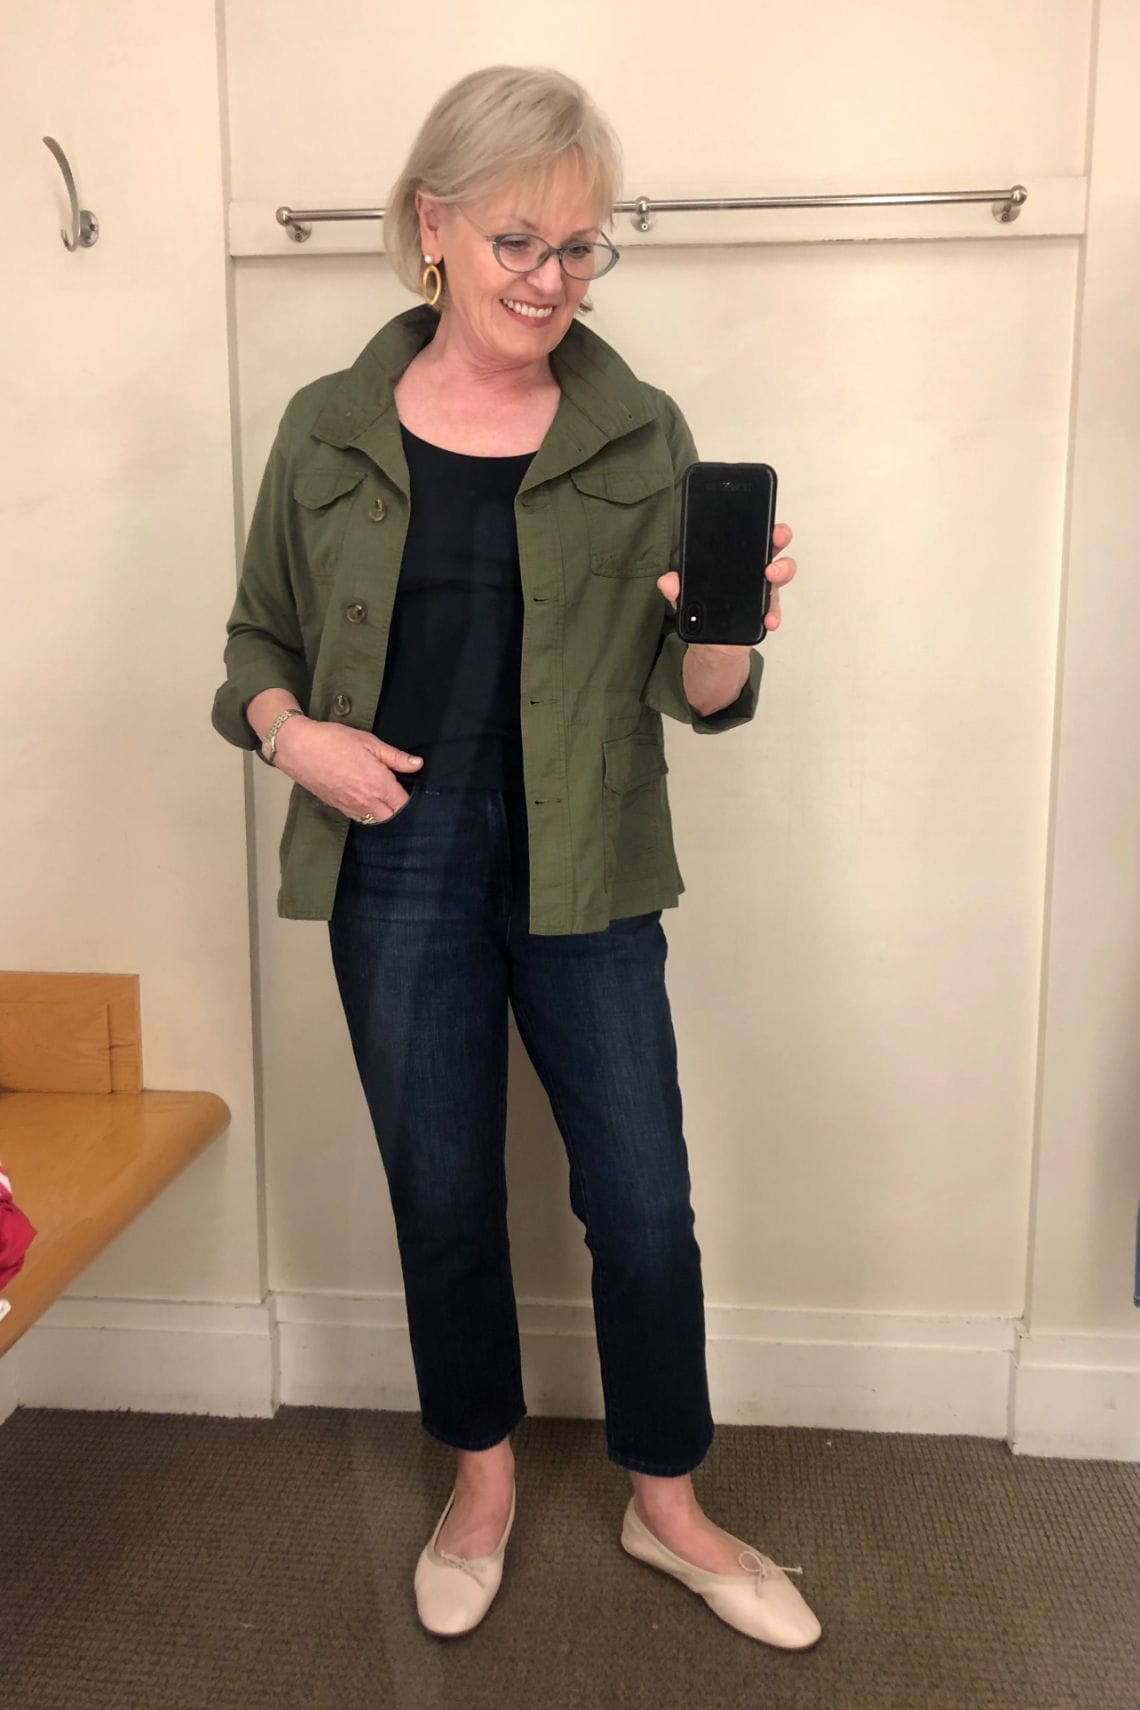 fashion blogger wearing green jacket and jeans in Talbots